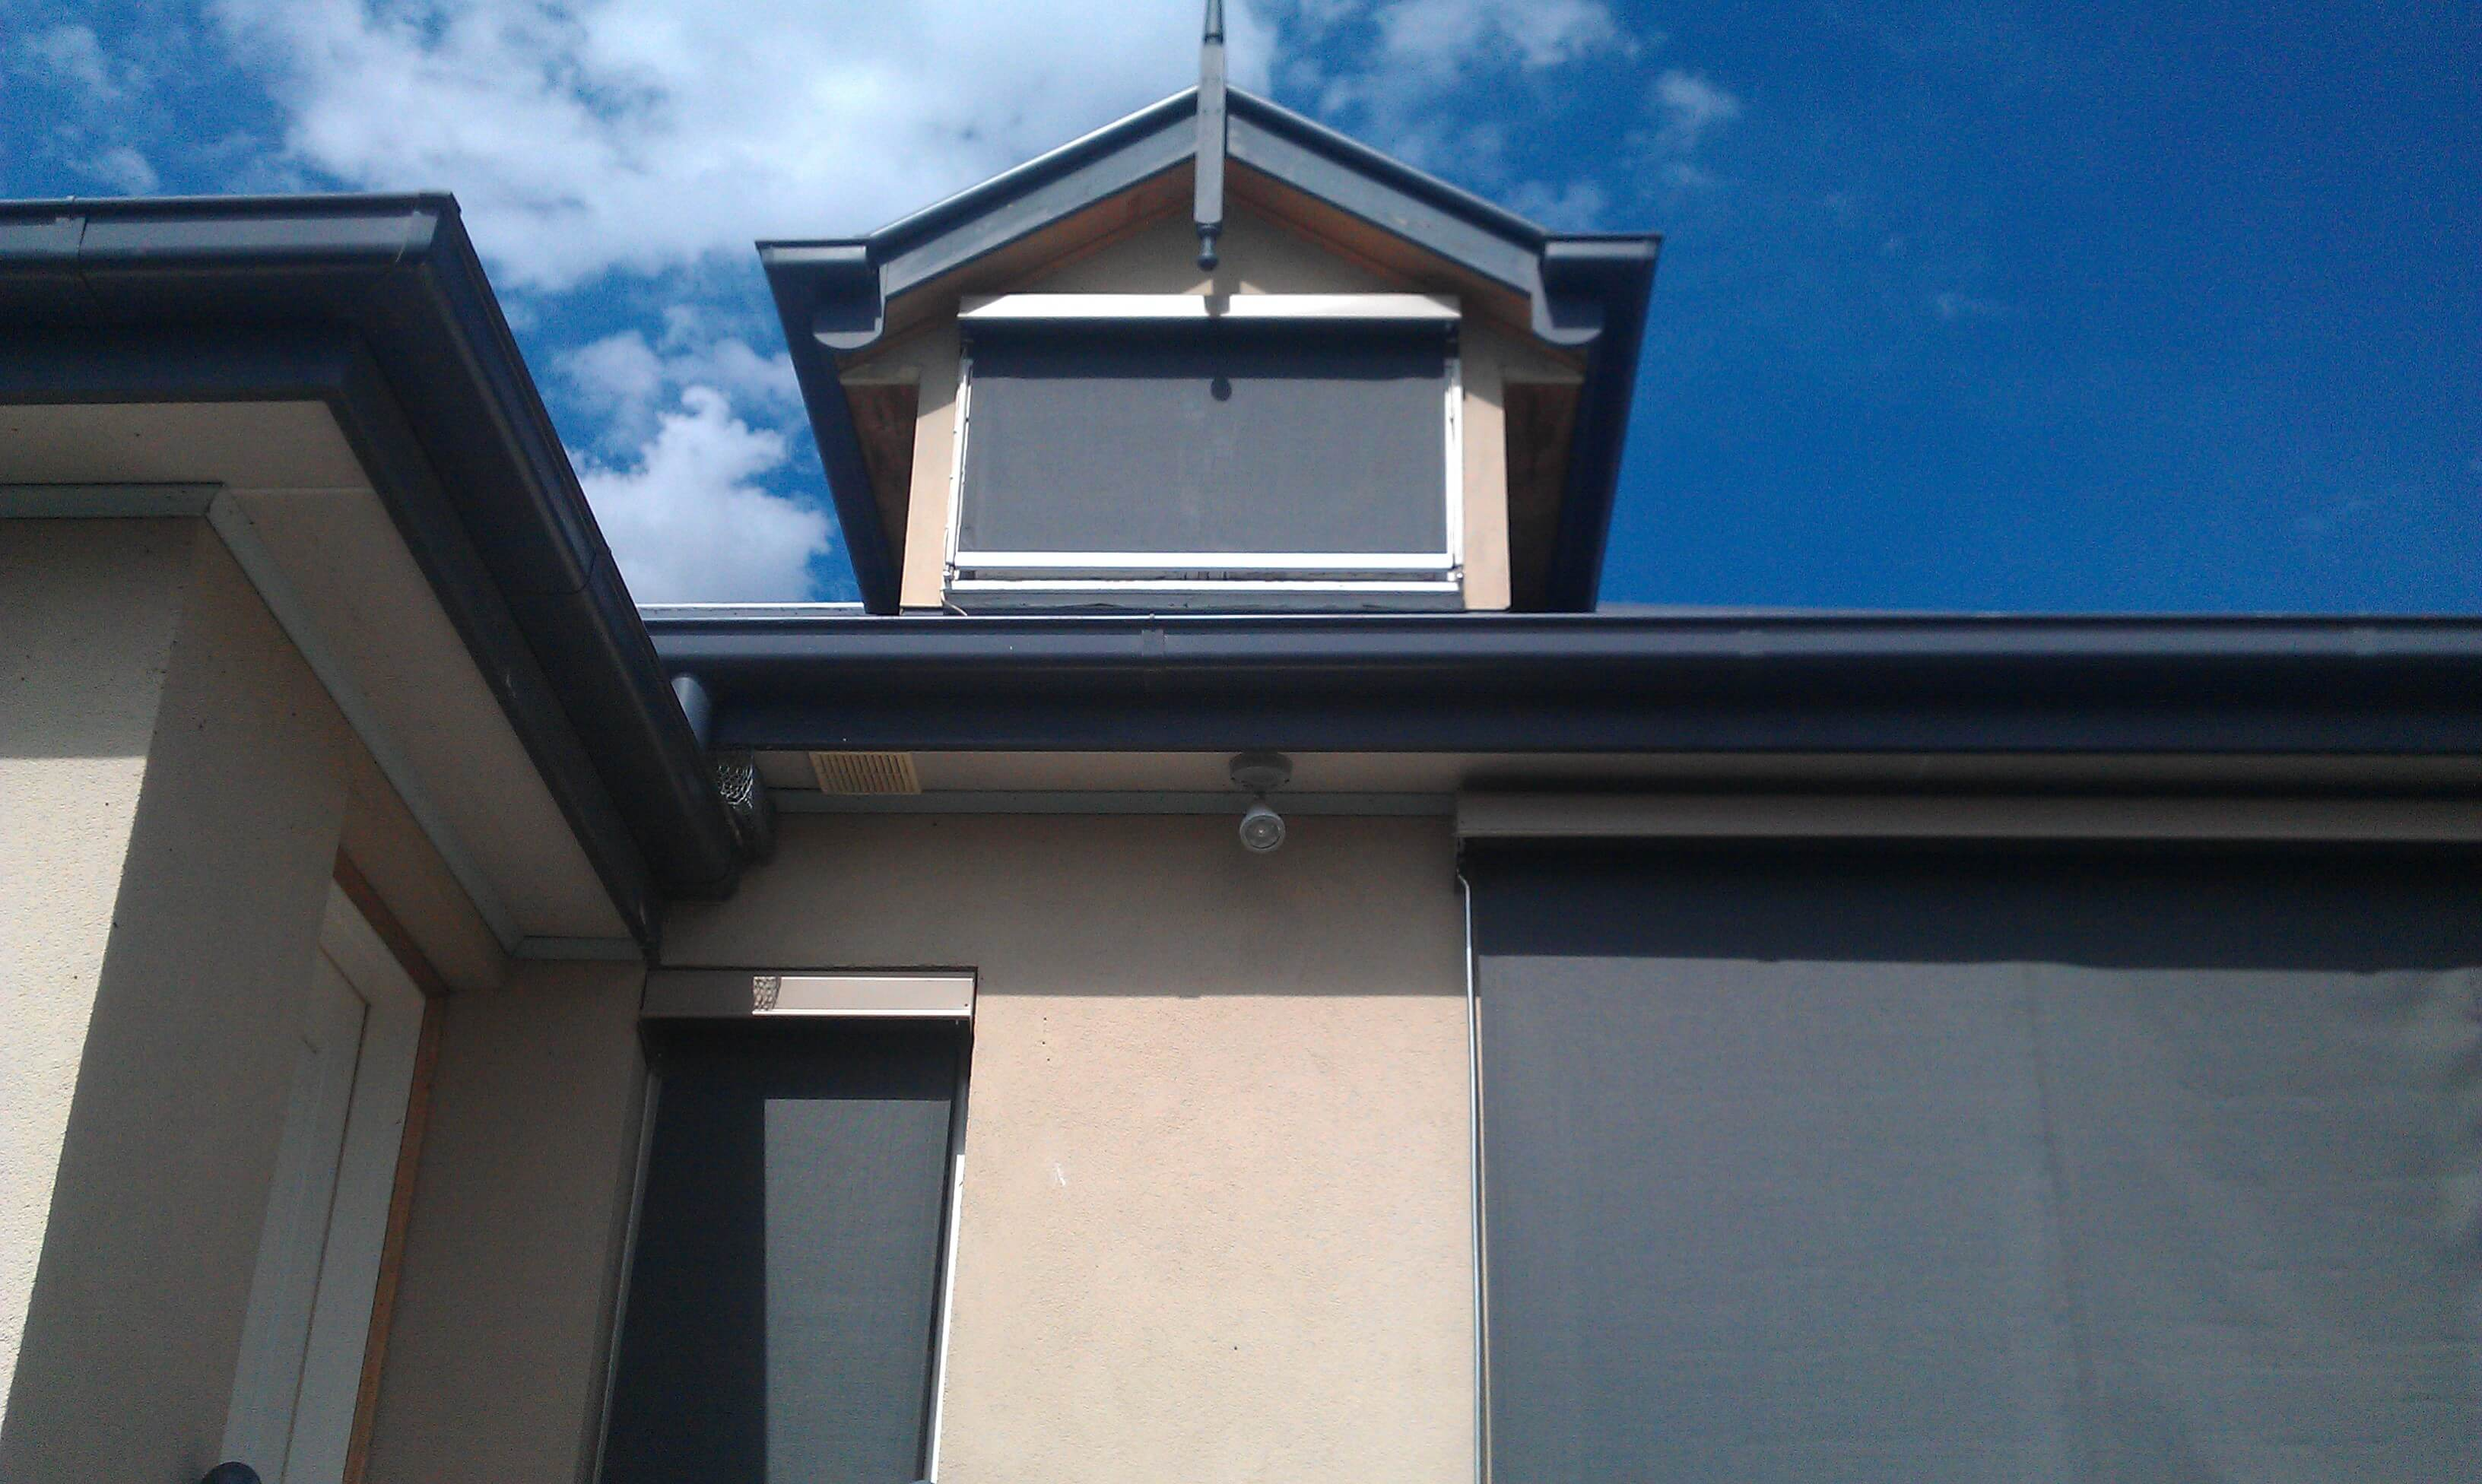 Fixed Guide Awnings Melbourne Euroblinds